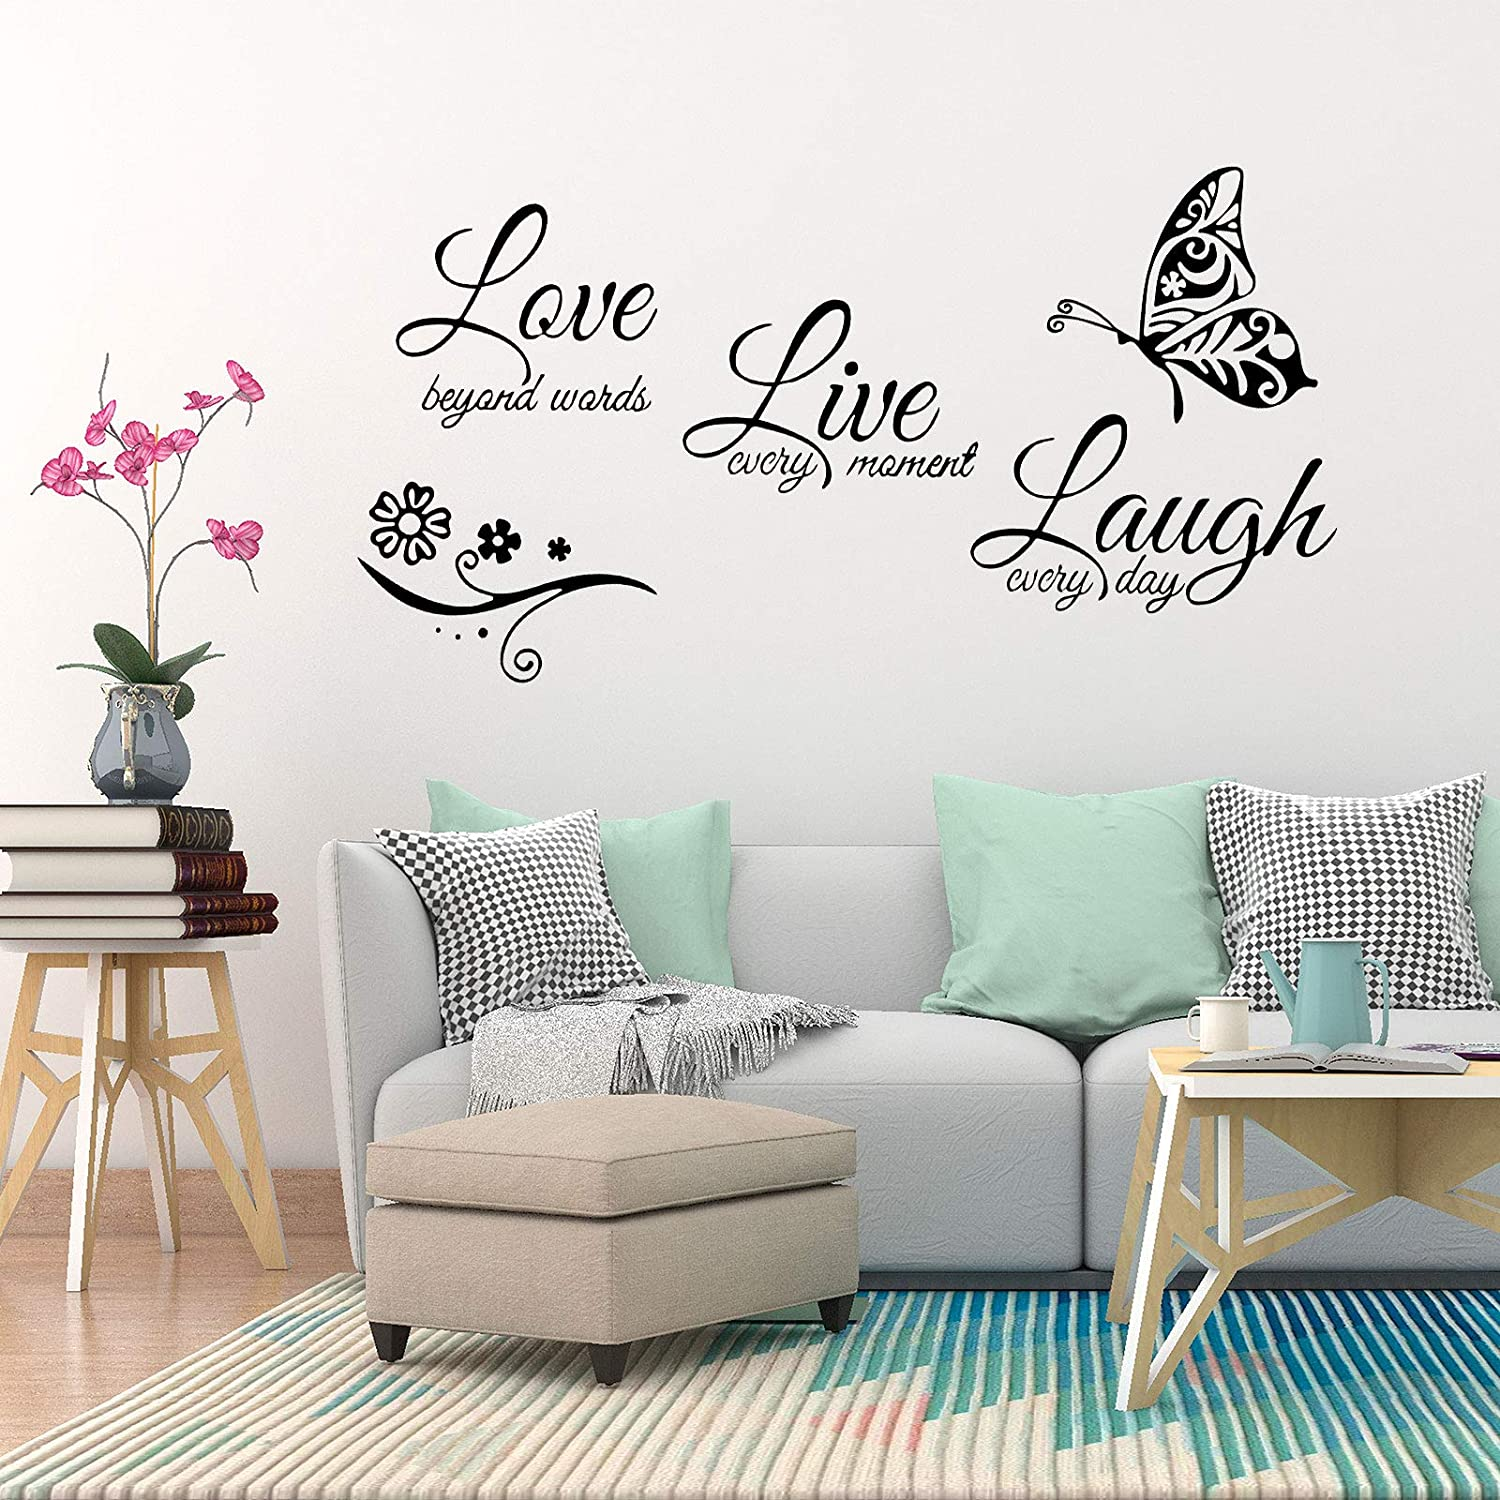 OOTSR Wall Sticker Decor, Live Laugh Love Wall Stickers, Wall Decals for Home Art Decor Ceiling Wall Decorate Bedroom Decorations